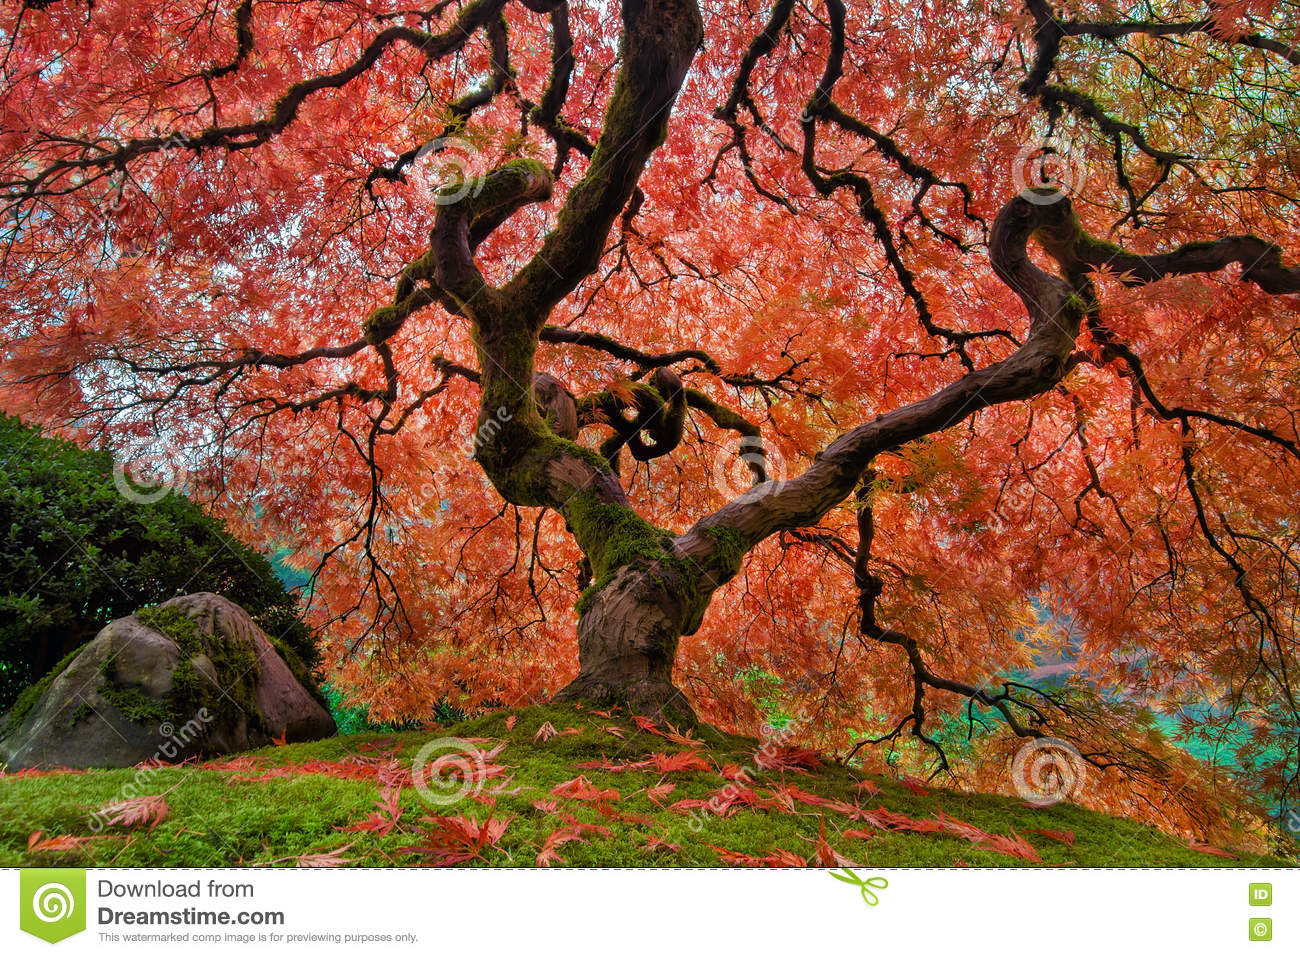 The Old Japanese Maple Tree In Autumn Stock Image - Image of north ...